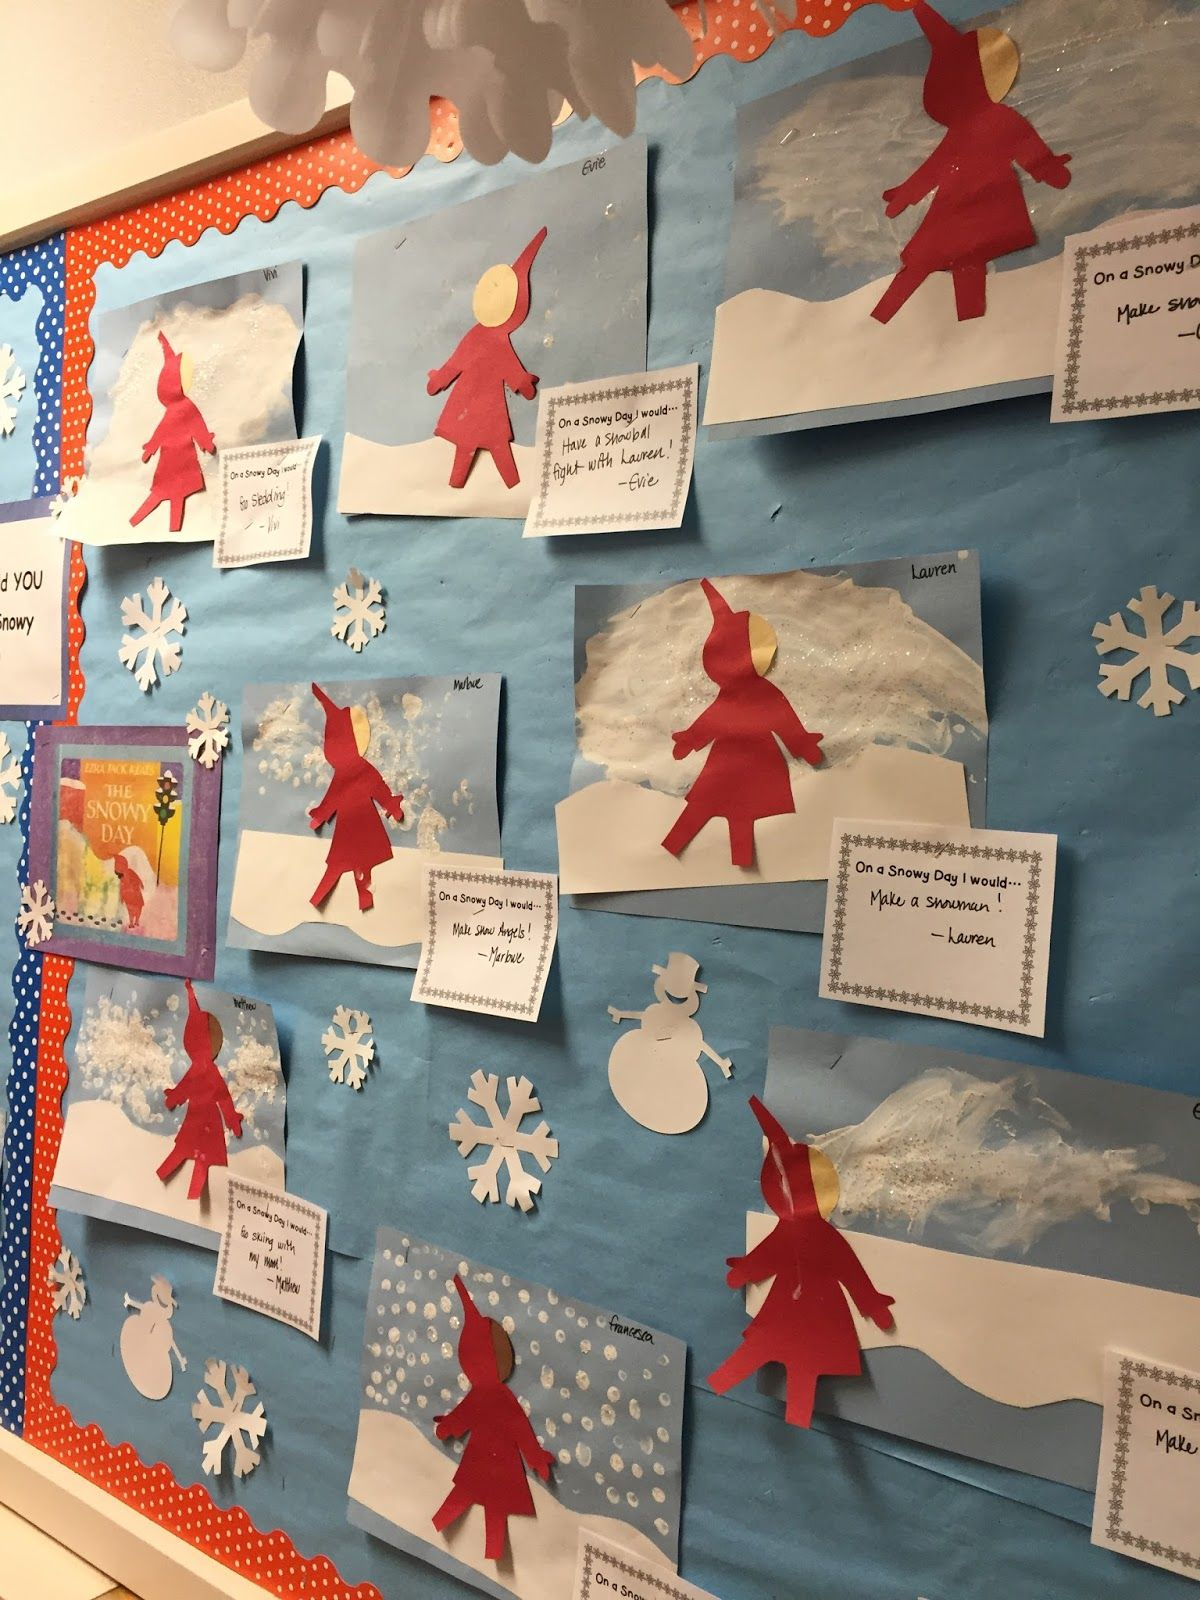 Great Literacy Art Activity To Go Along With The Snowy